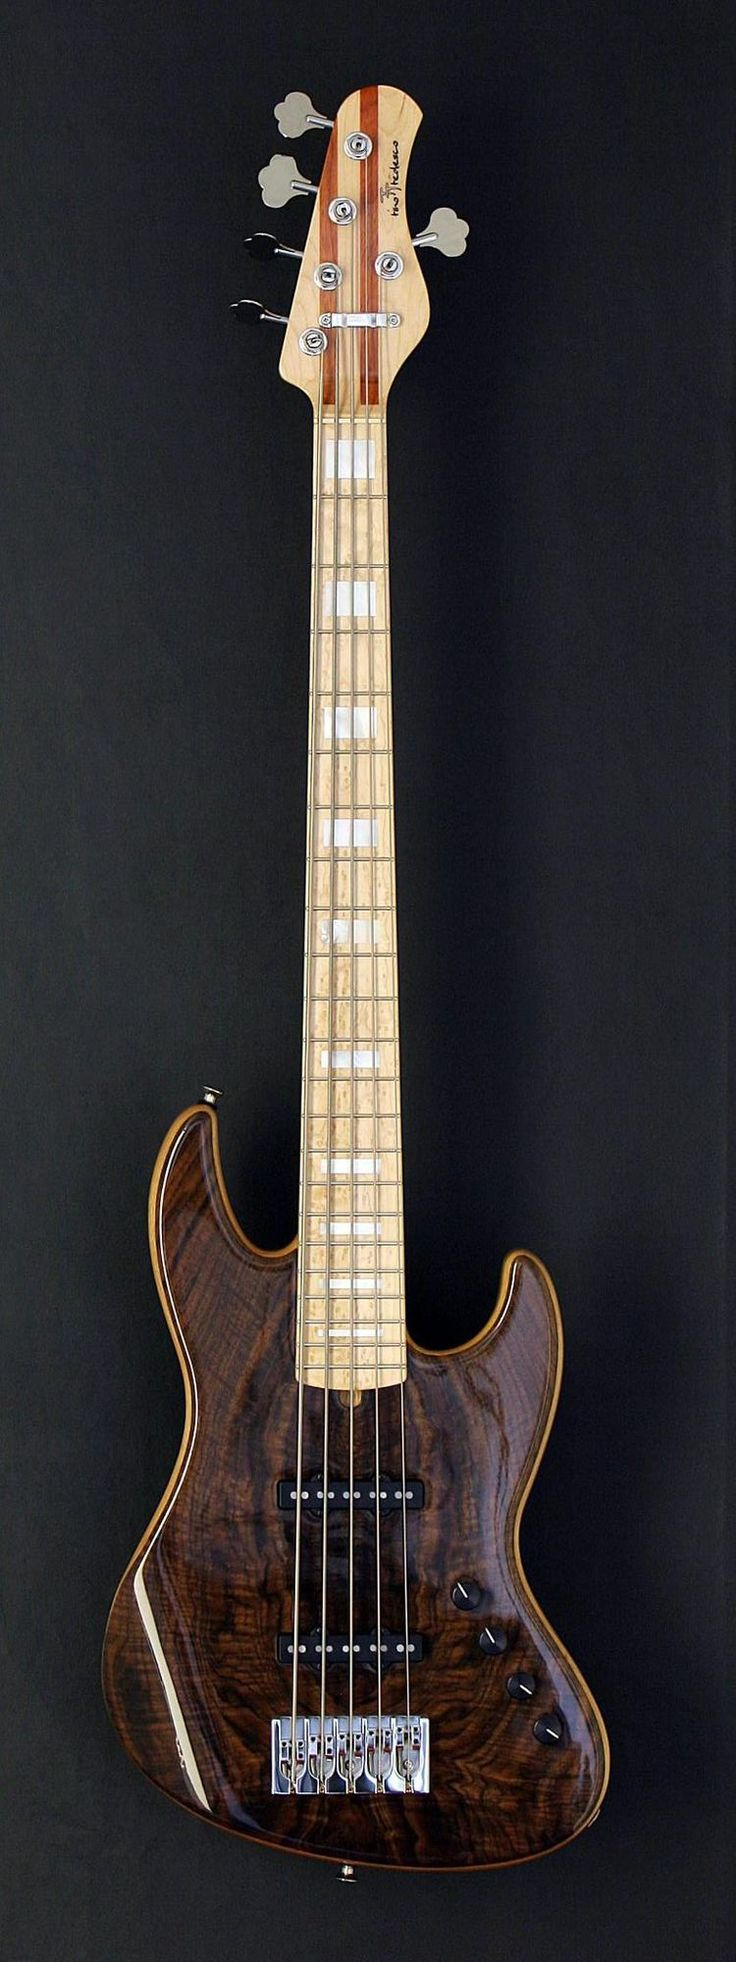 10 Best Guitars Images On Pinterest Musical Instruments Bass Humbucker Wiring Challenge Mylespaulcom F4ff3cdb08299ec8f2dd2c8959f16362 7502000 Pixels